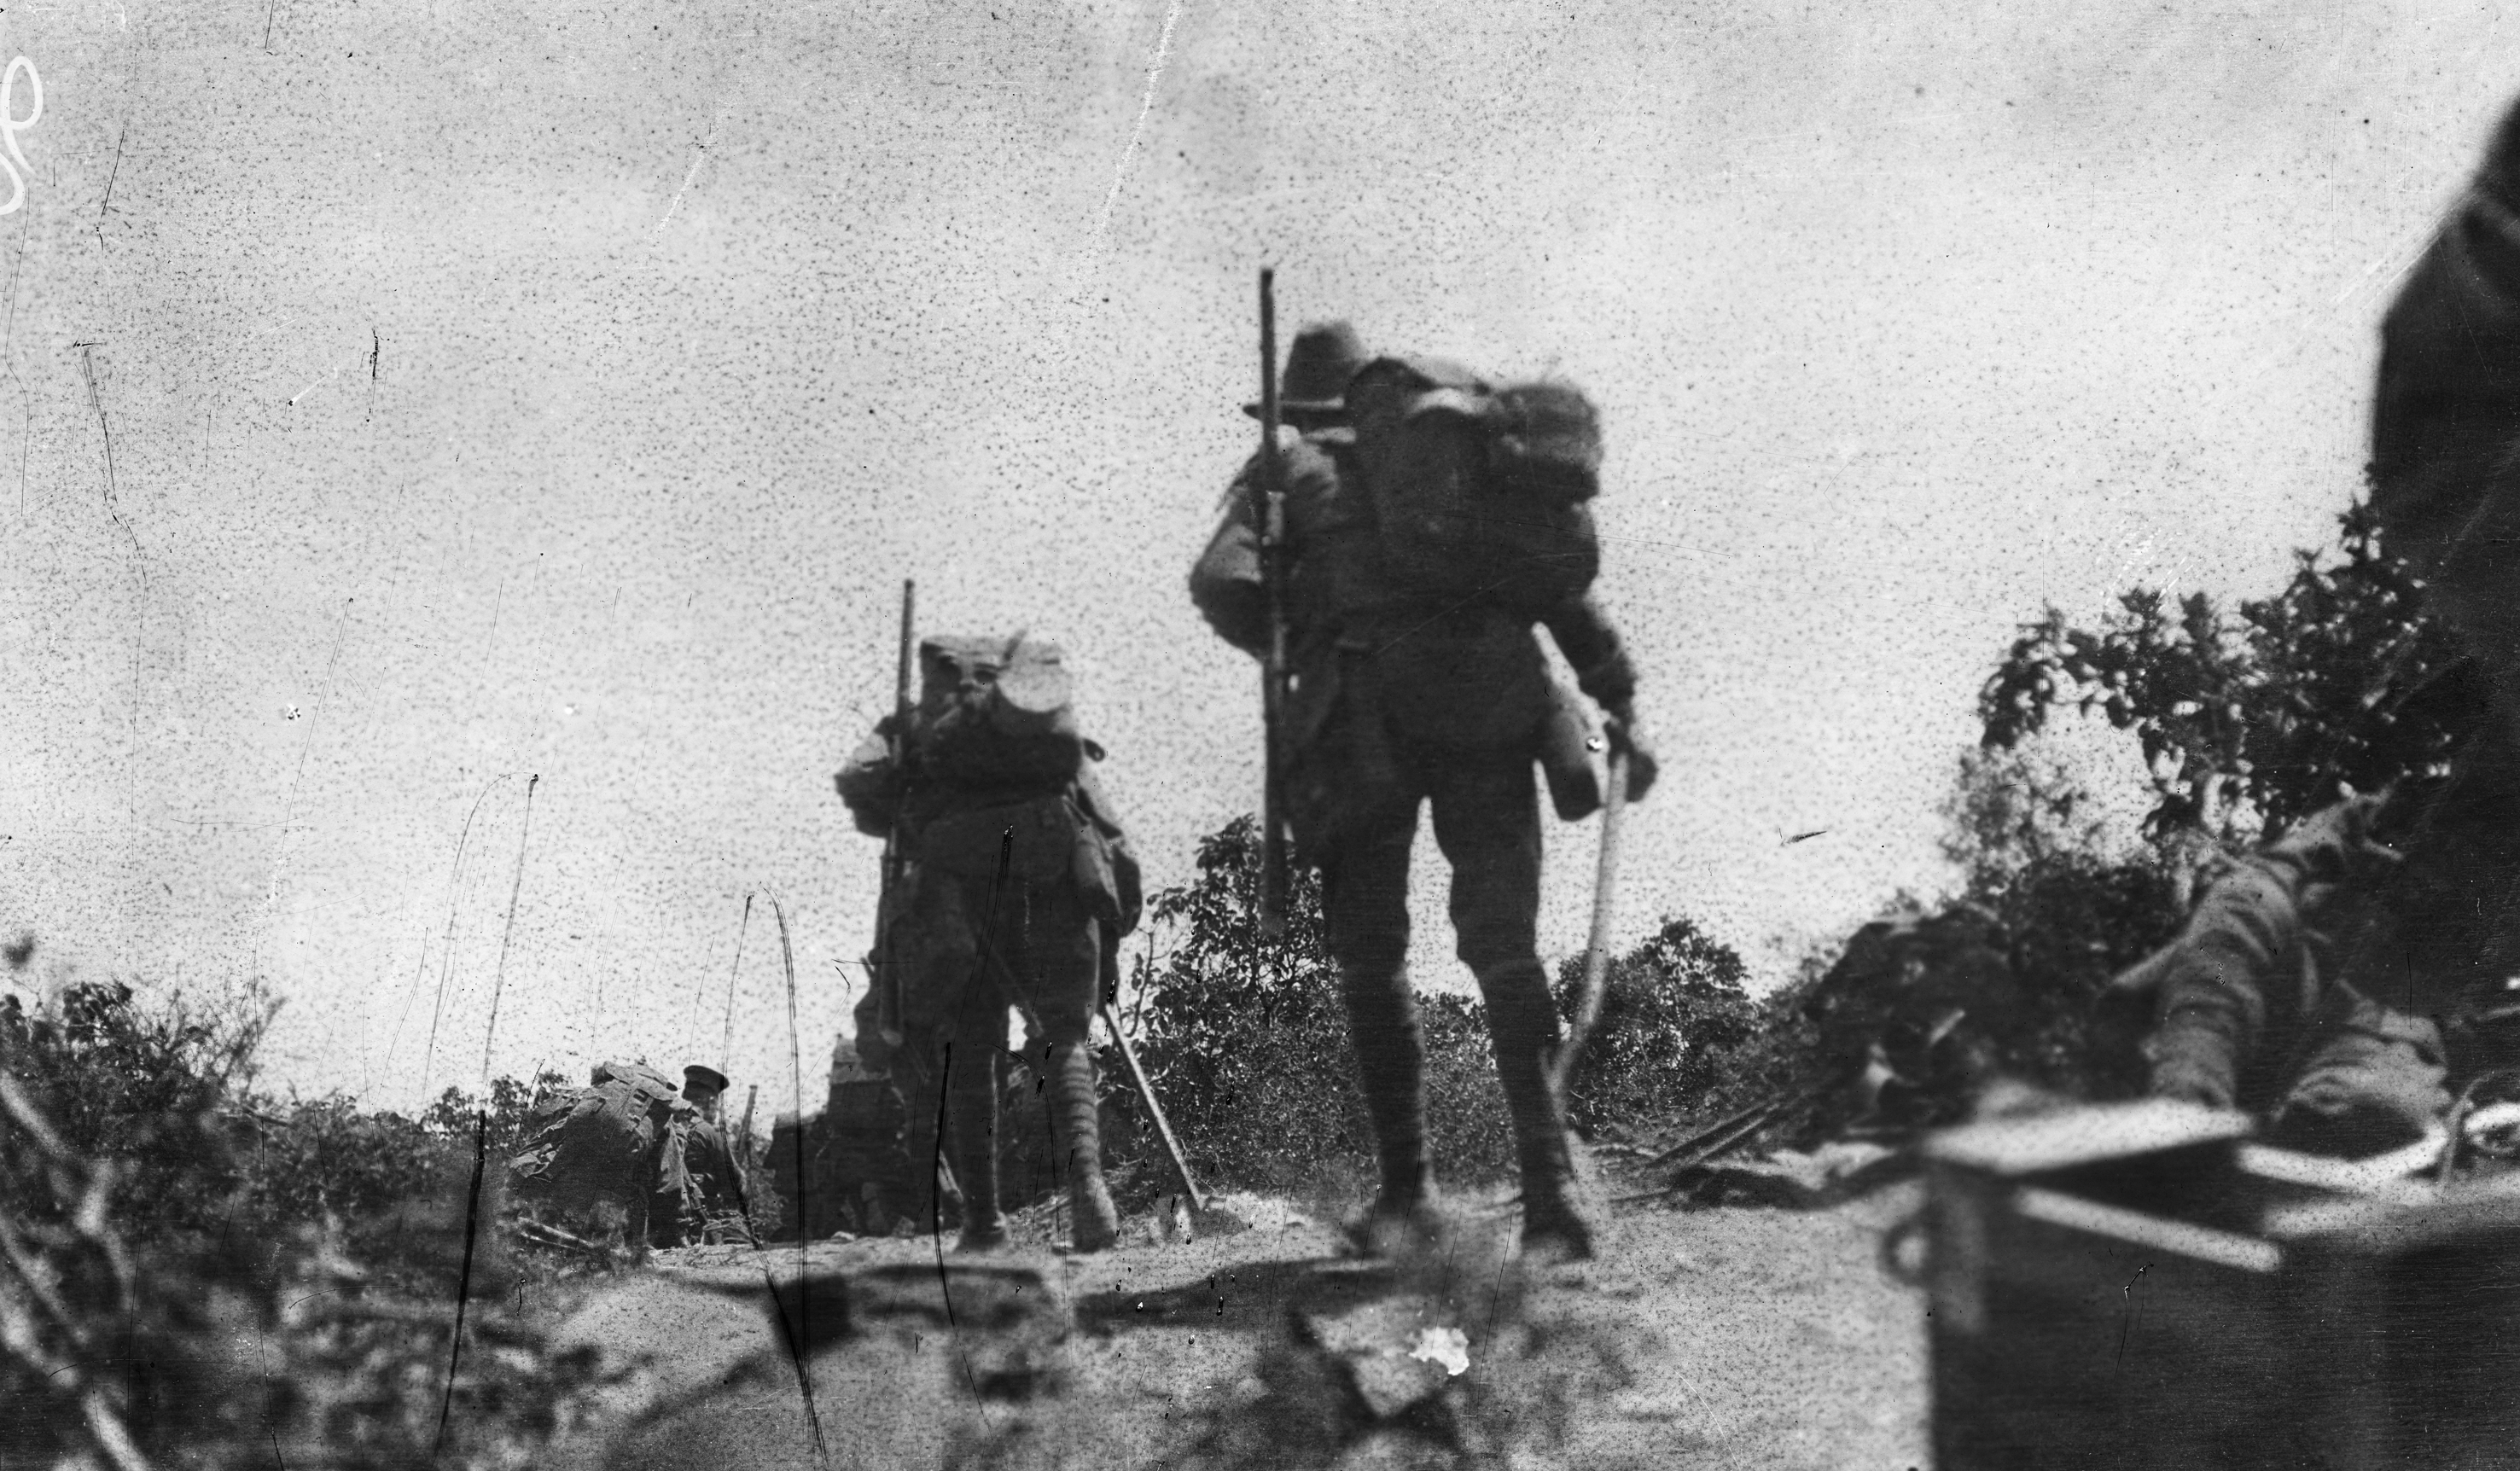 australian involvement in wwi history essay The battle of villers-bretonneux in  higher prominence in accounts of australia's involvement in wwi  by the australian government after wwi,.